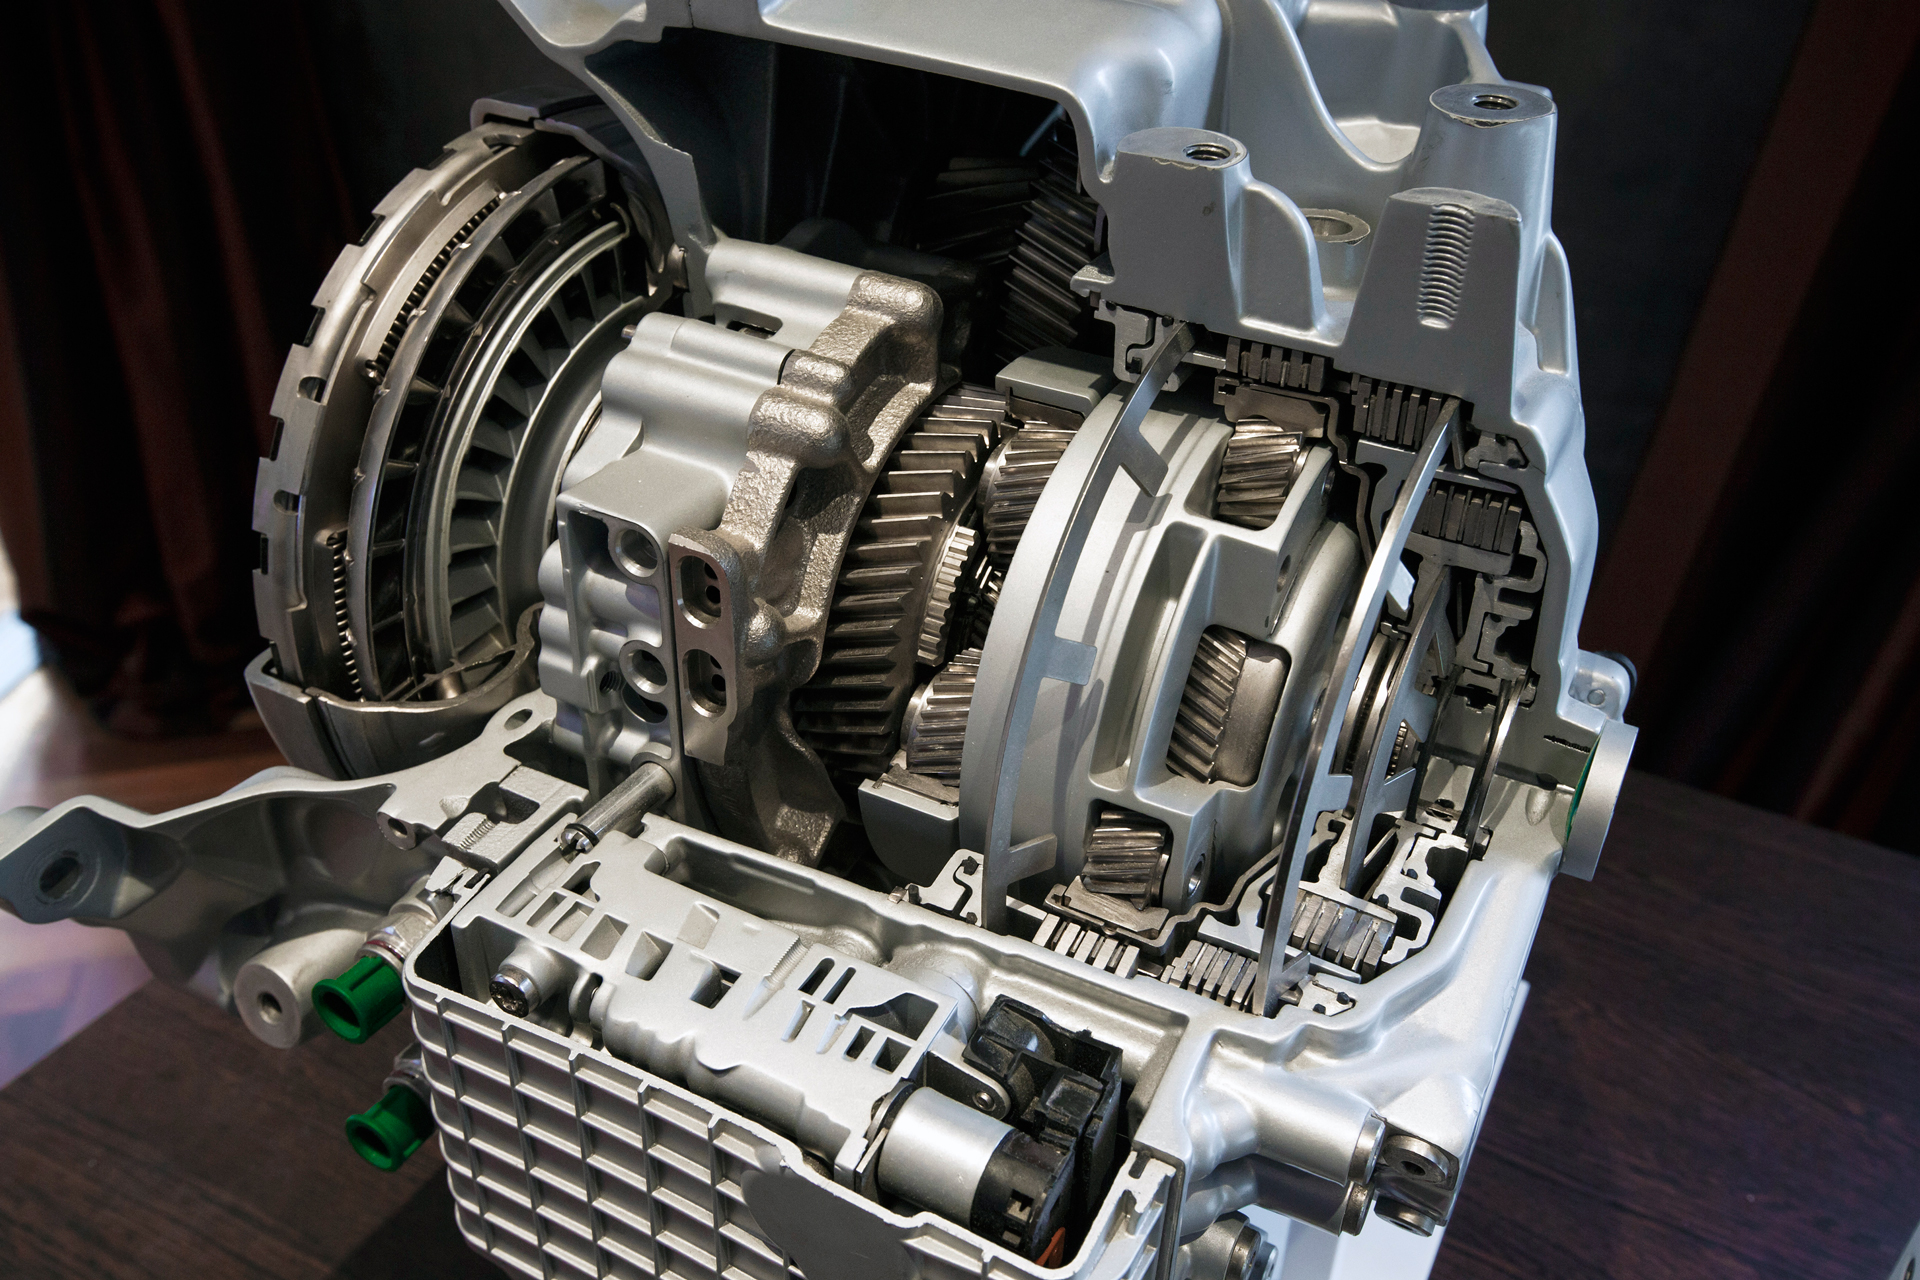 Land Rover - ZF 9-HP48 sectioned gearbox - Geneva 2013 - Photo via Wikipedia